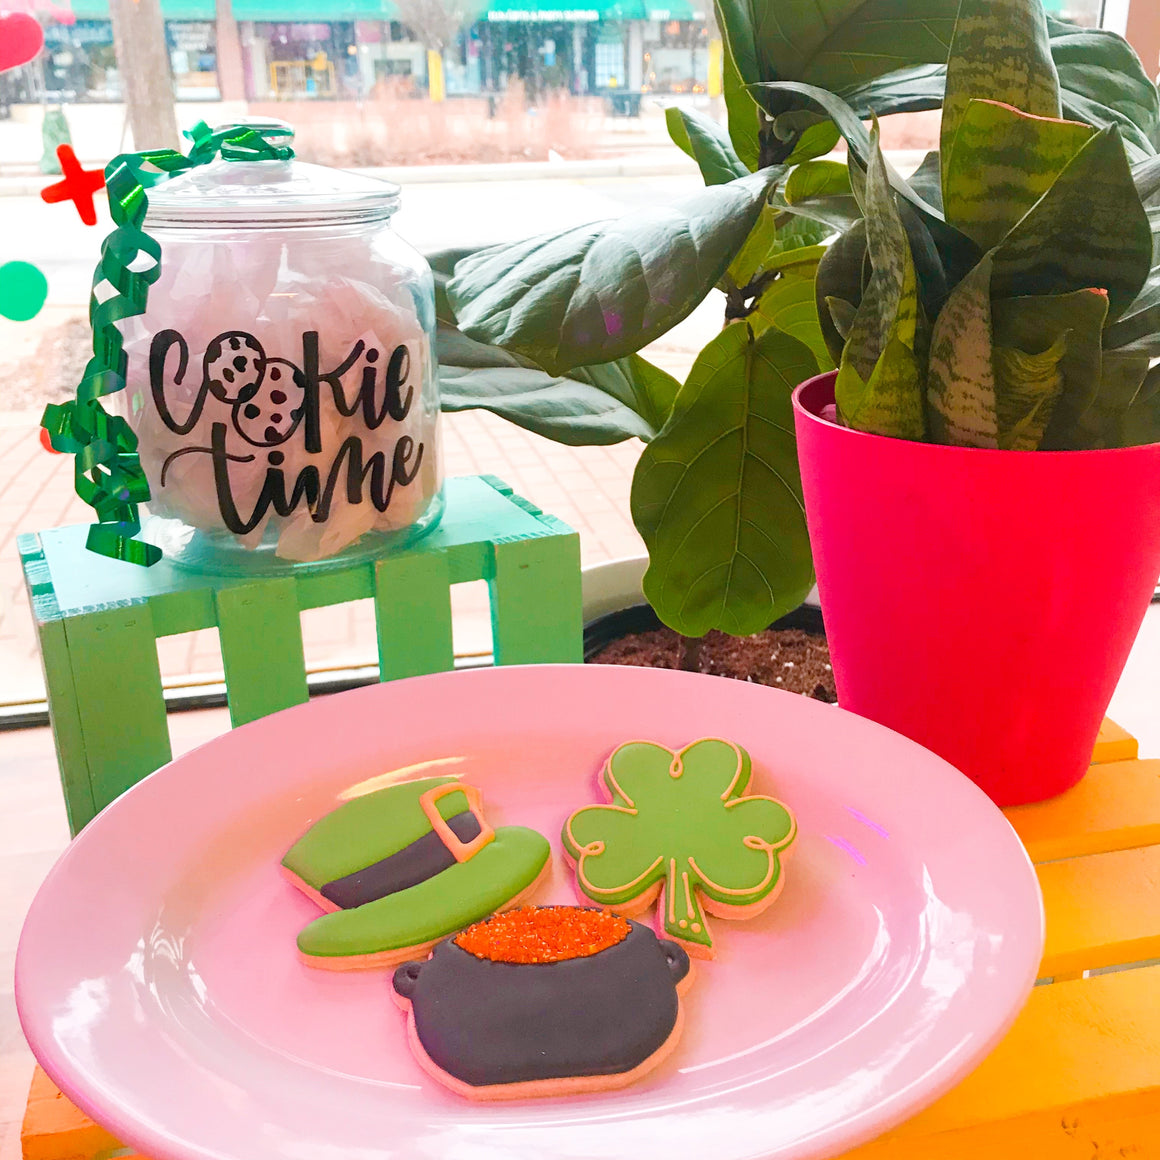 St. Patty's Cookies & Calligraphy Workshop - March 17